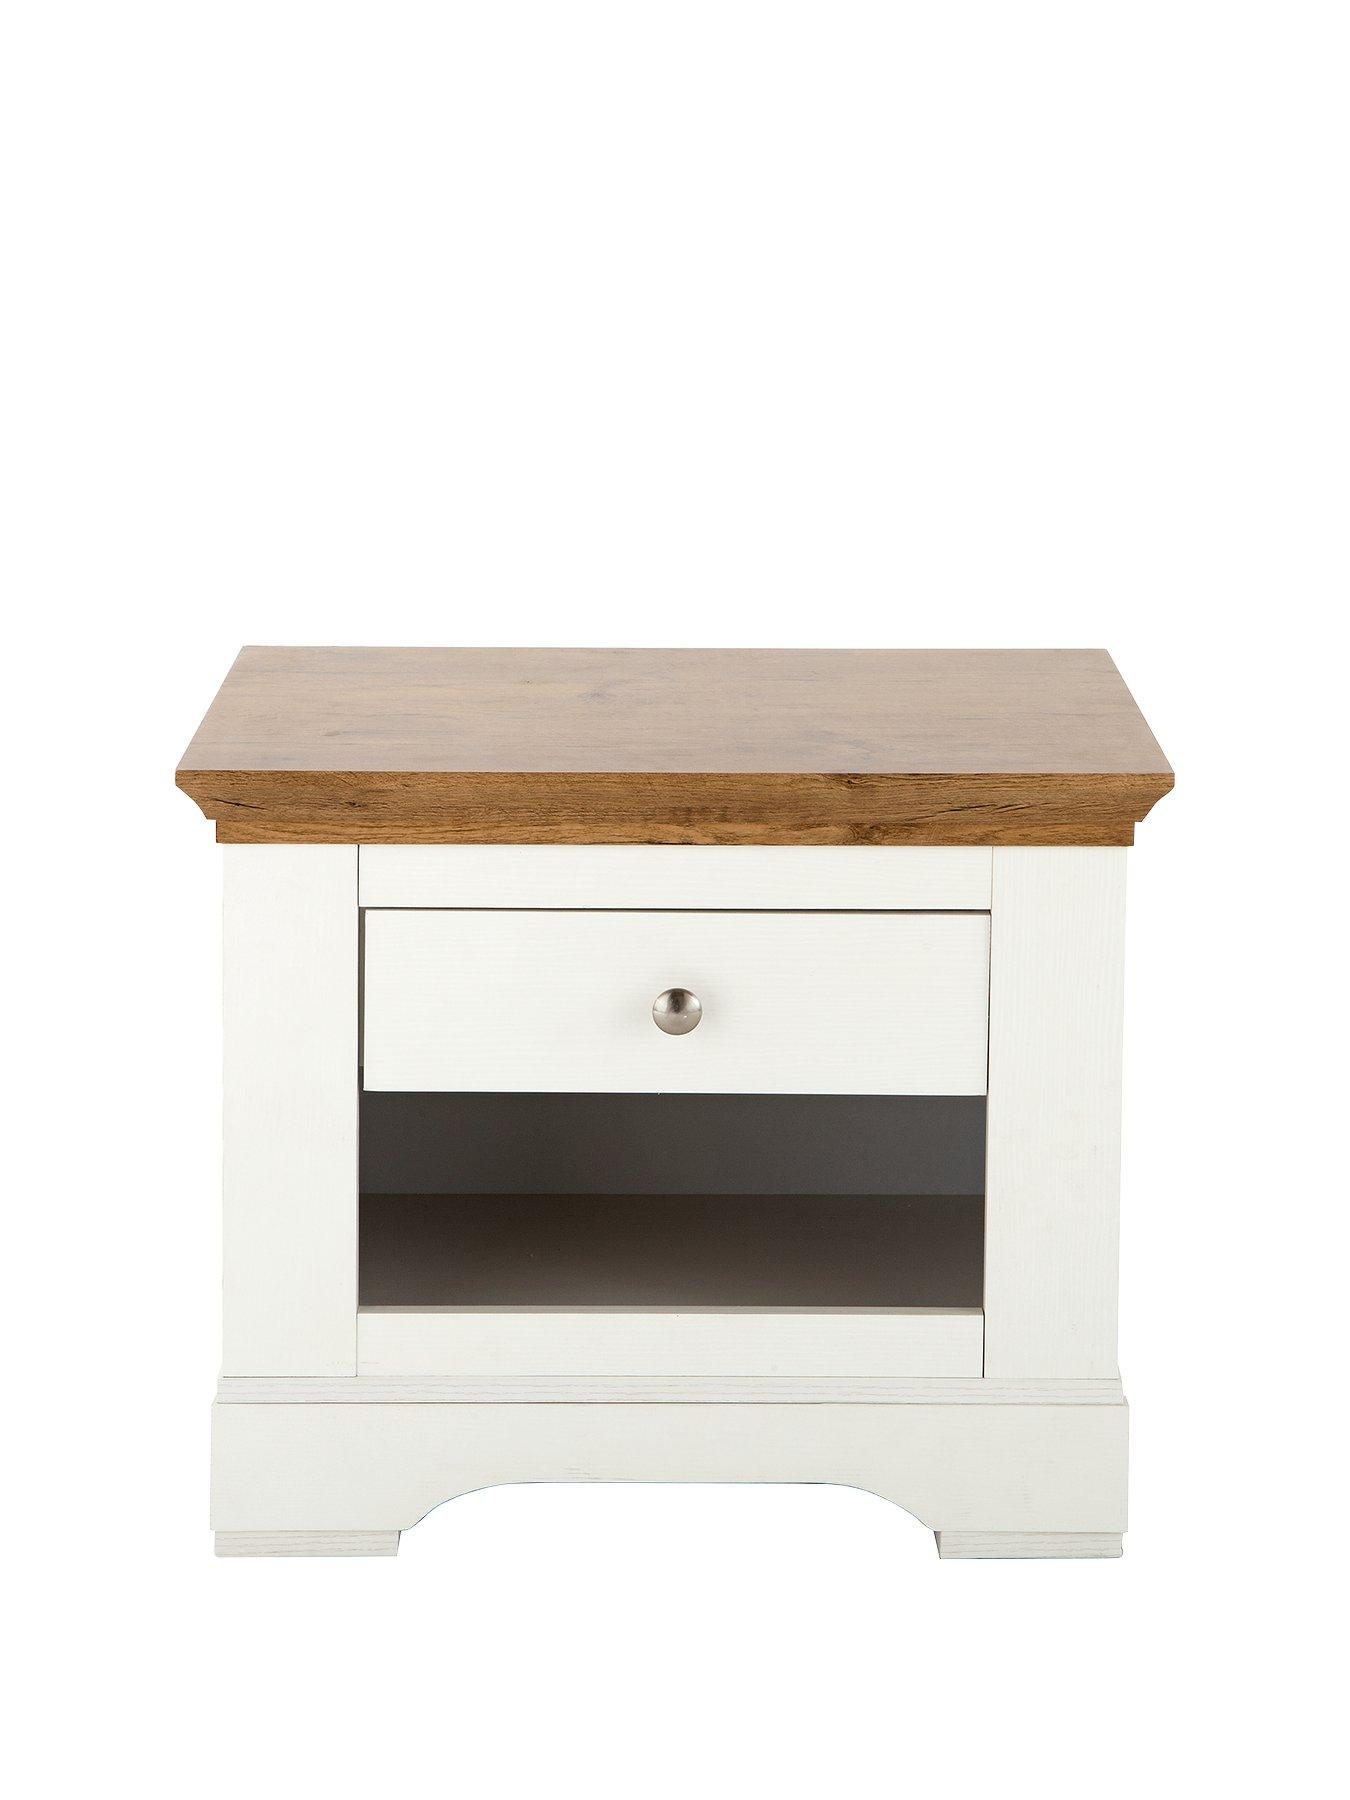 W 45 White End Table Side Table Multiple Purpose-Size H 45 D 45cm Coffee,Lamp